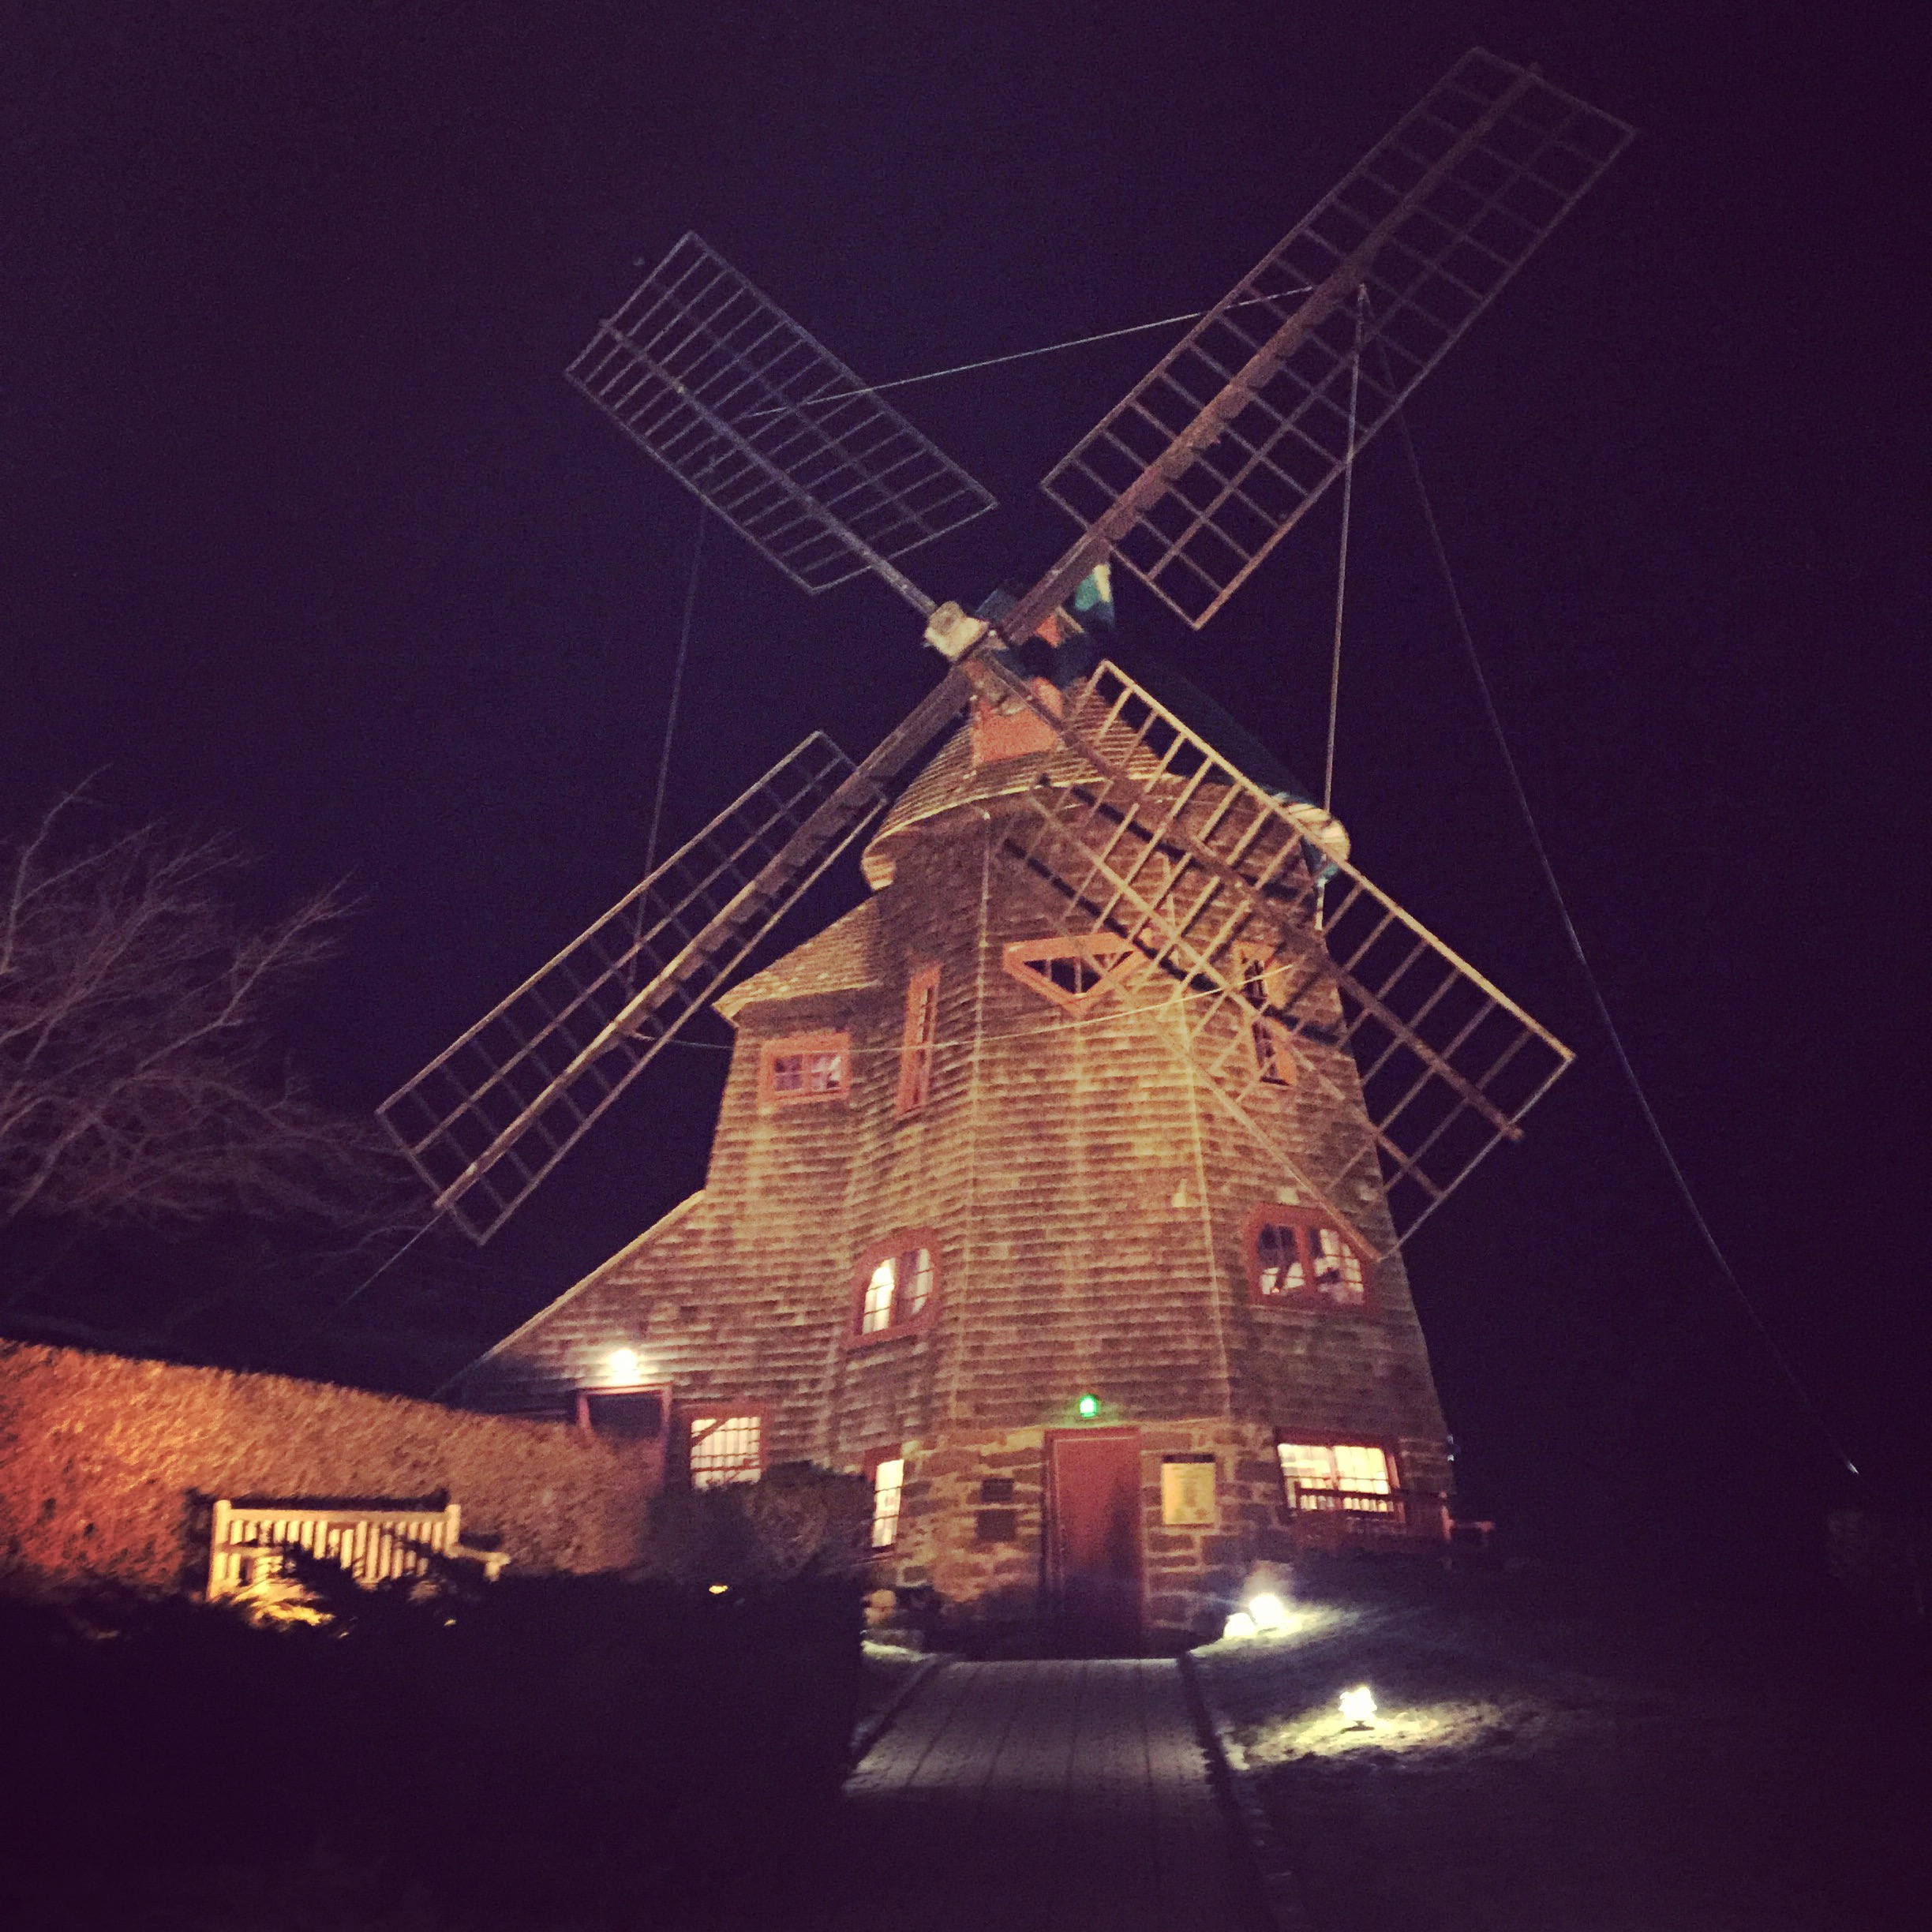 The windmill Tennessee Williams rented and lived in while writing several of his plays, on campus at SUNY-Stony Brook Southampton, where Lauren completed her Children's Literature Fellowship.